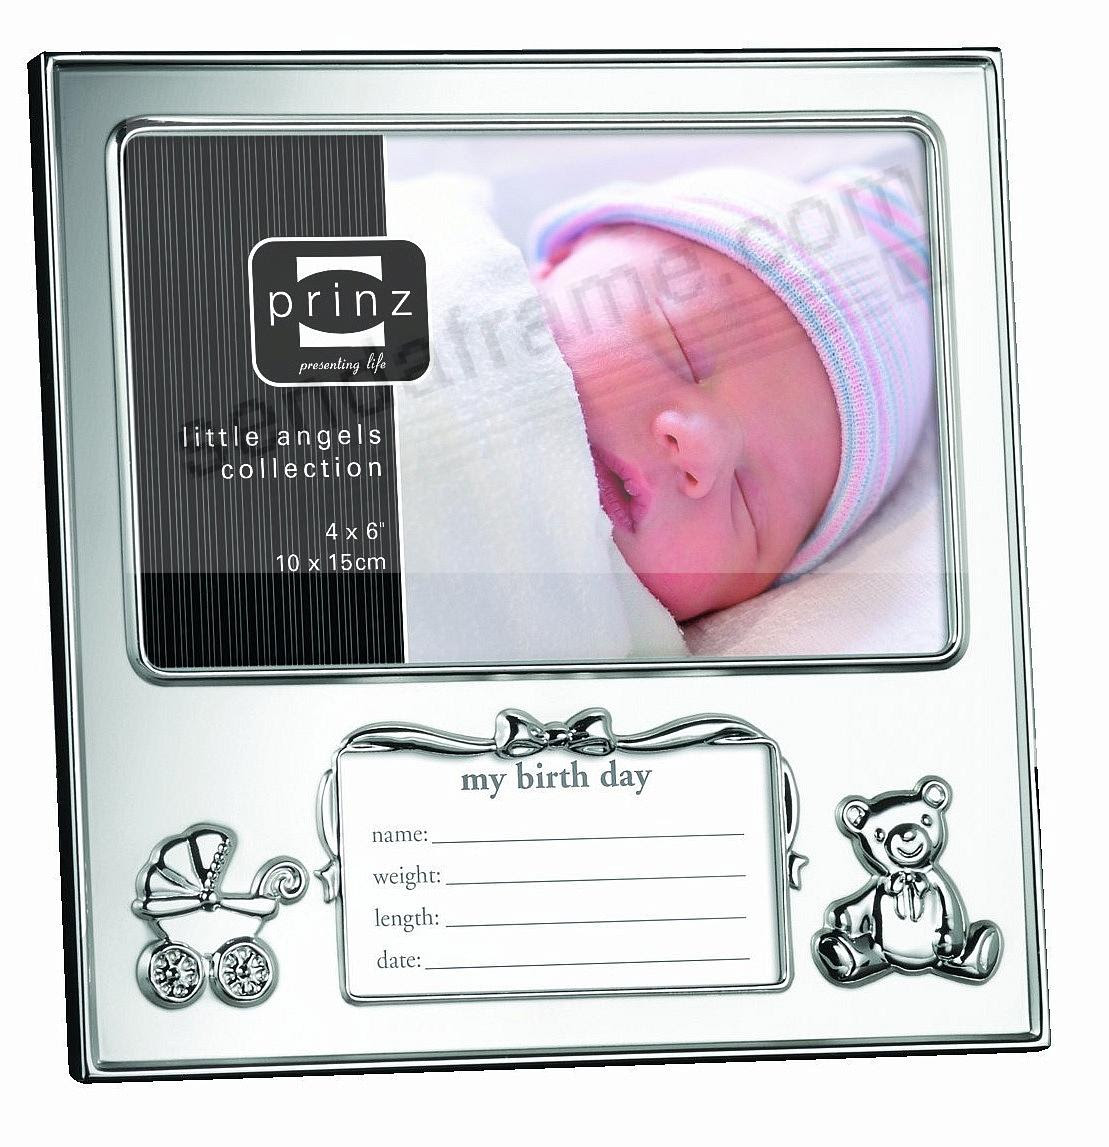 Just Arrived Newborn Birth Record Frame By Prinz Picture Frames